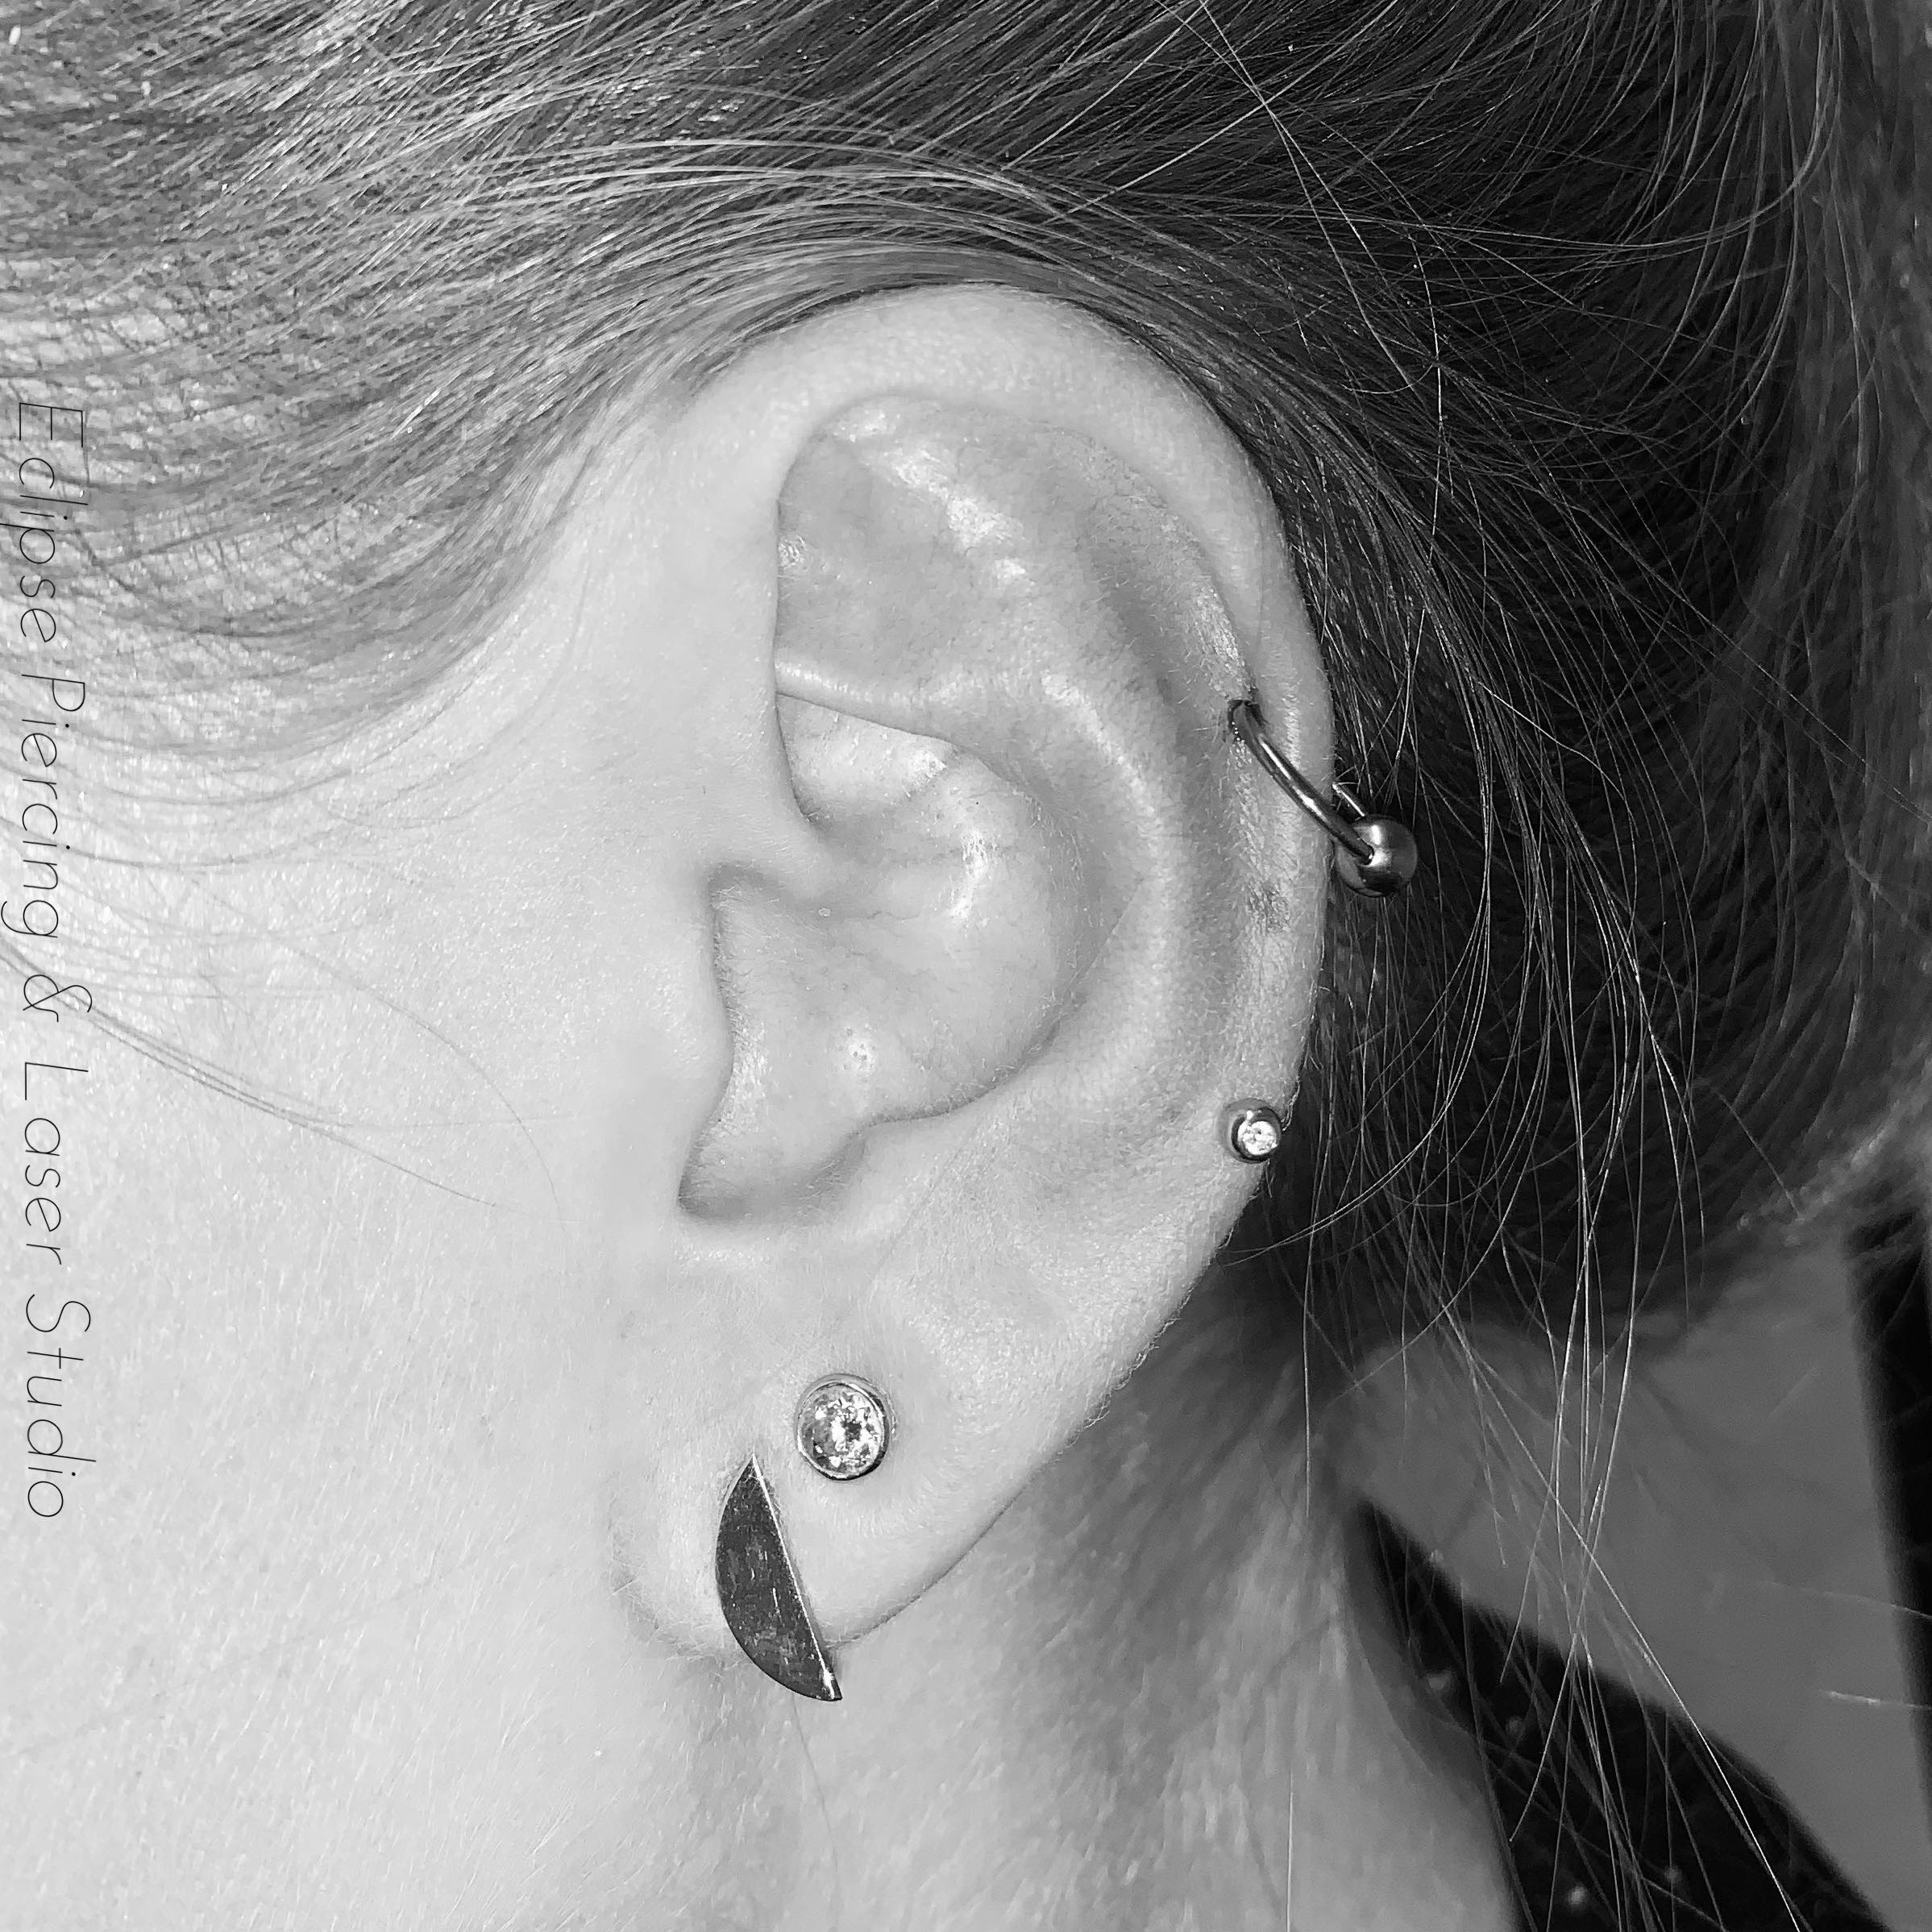 Helix piercing with a ball closure ring